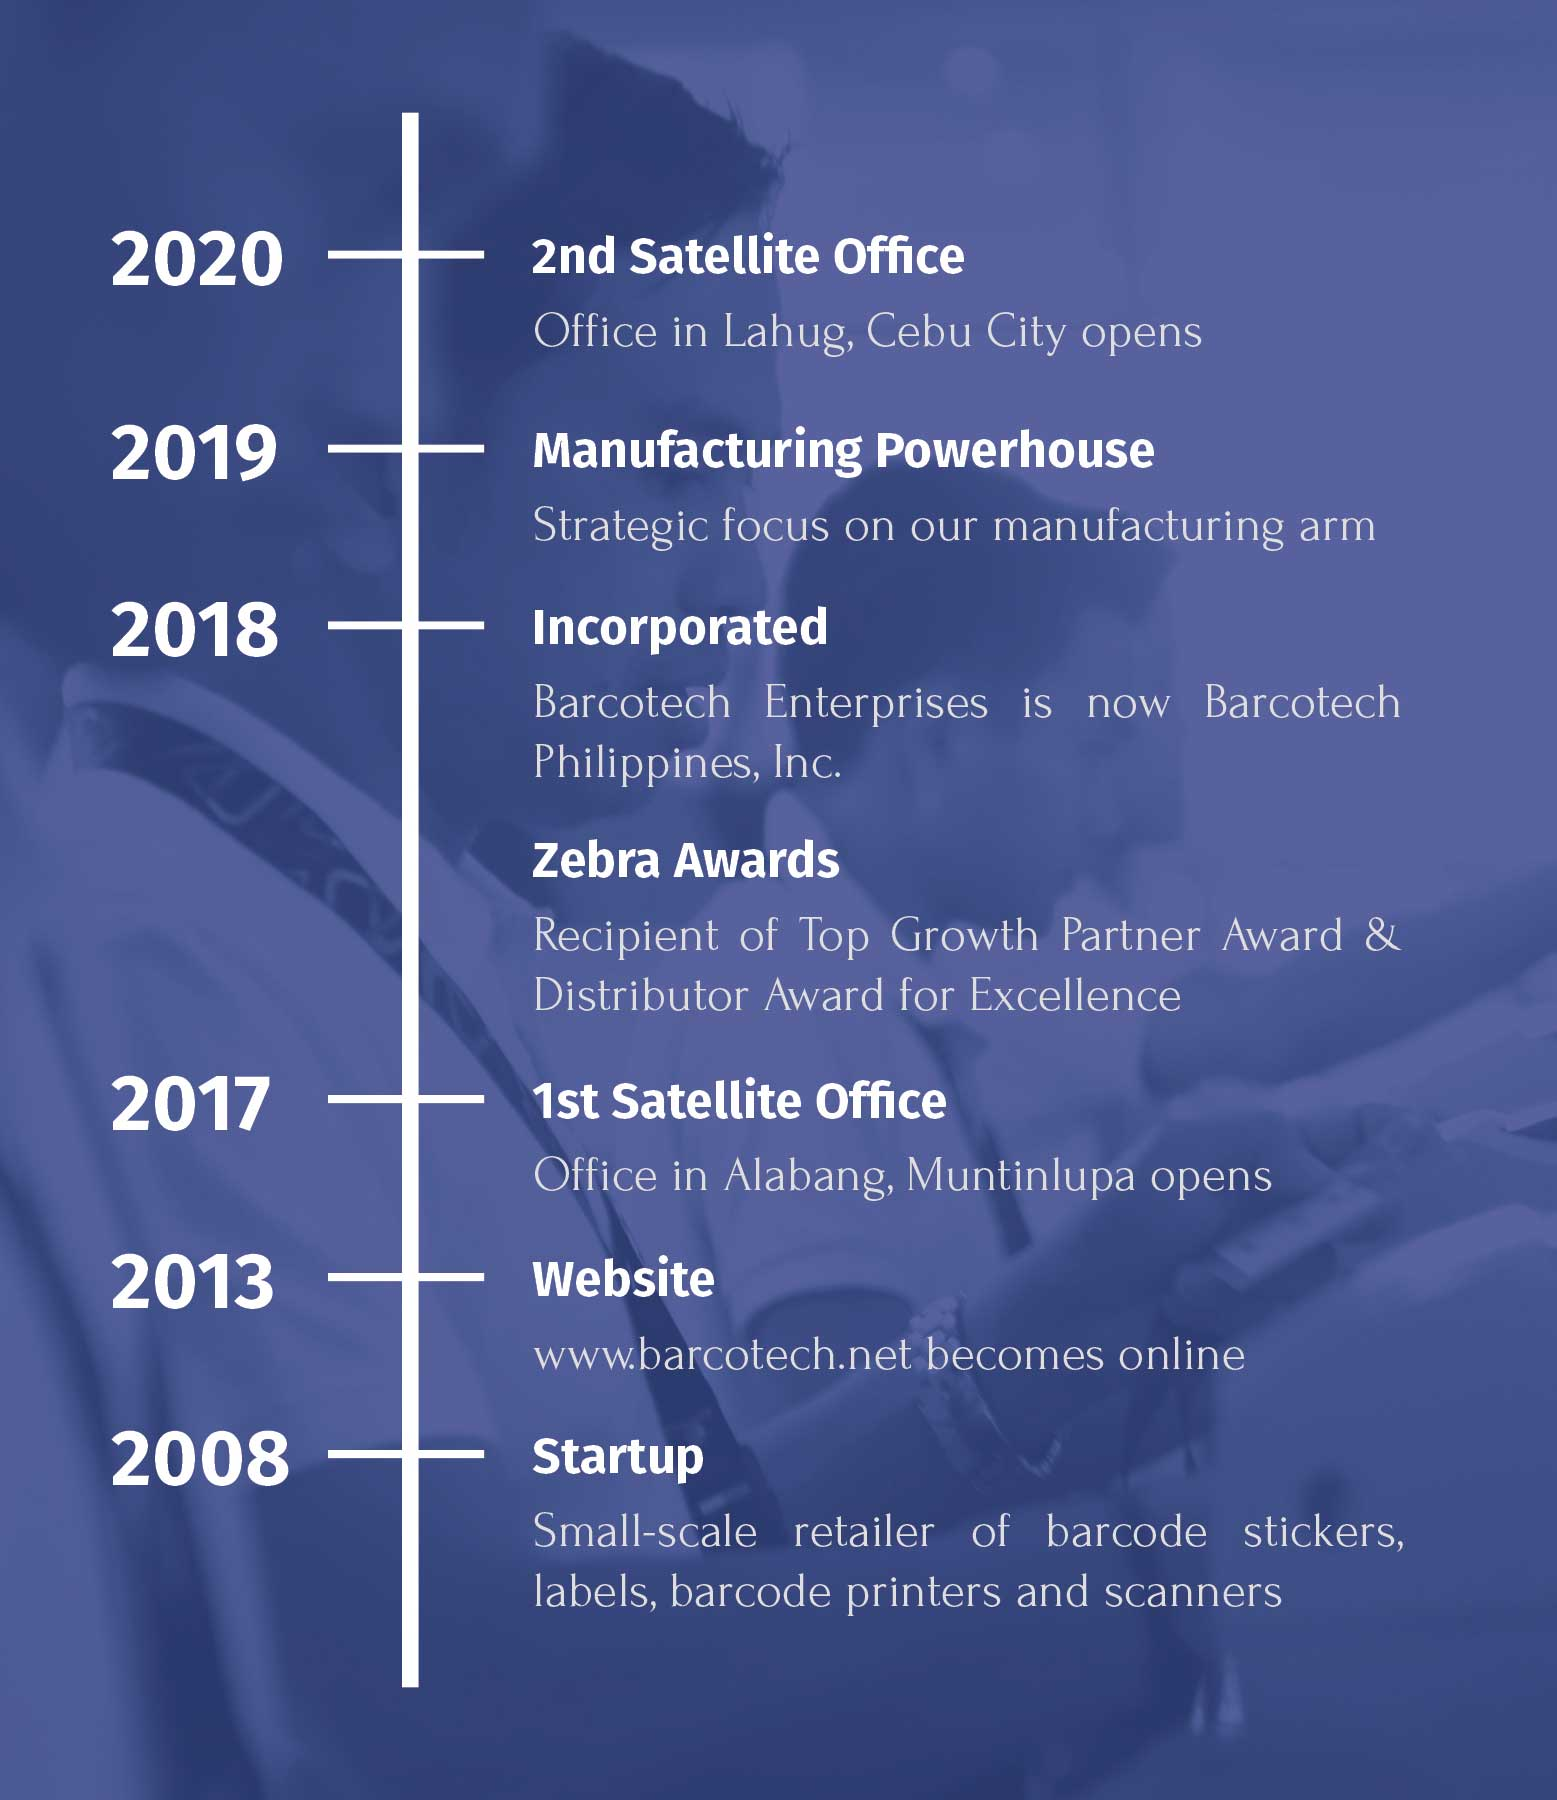 Barcotech Success Timeline